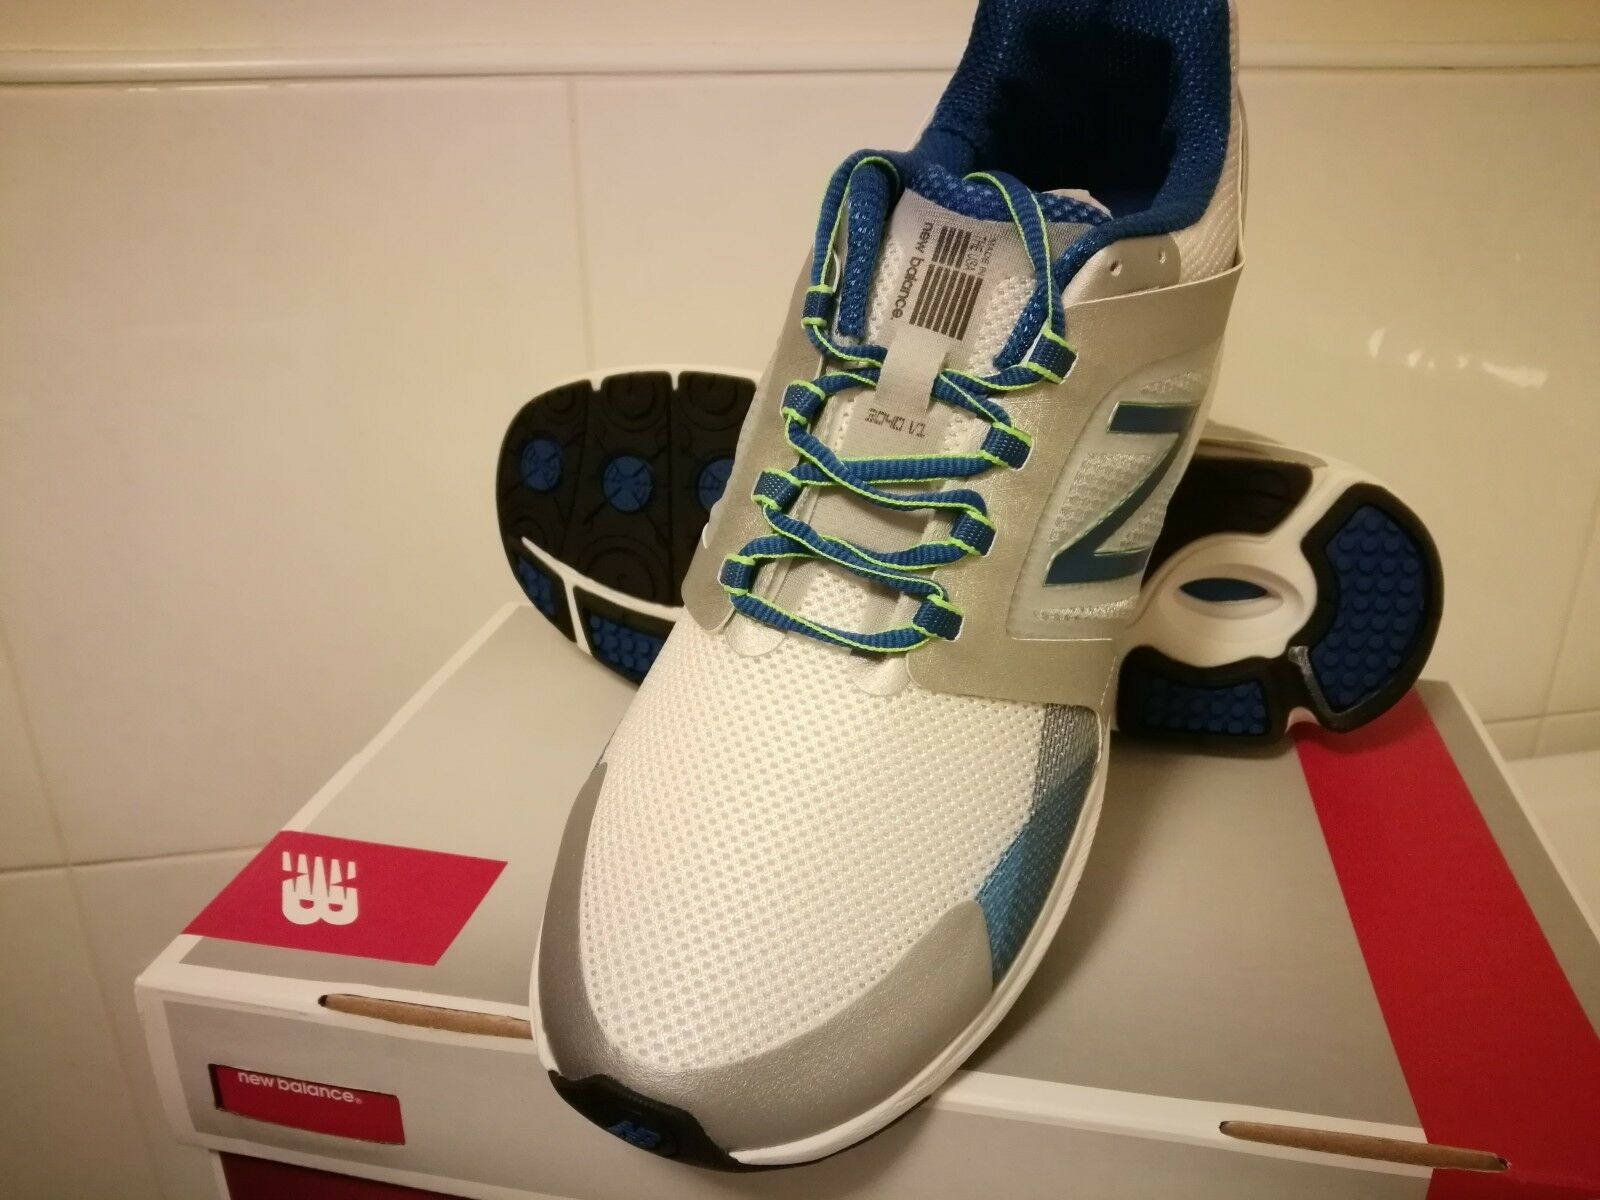 New! Mens New Balance 3040 Running Sneakers Shoes D Width - limited sizes SB